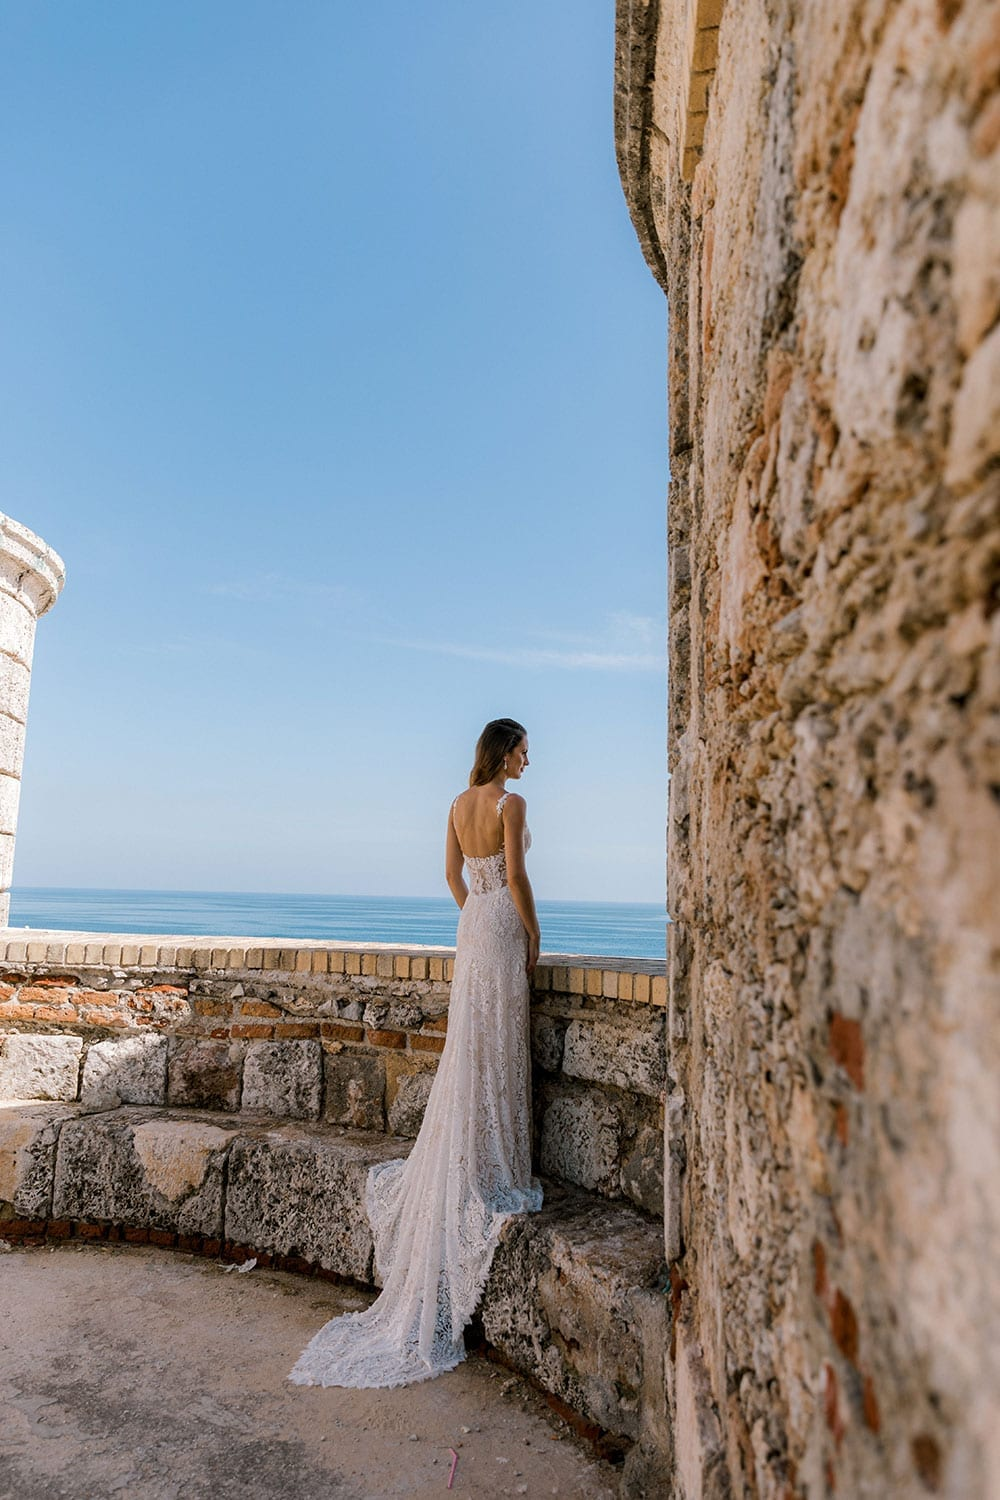 Model wearing Vinka Design Miriam Wedding Dress, a Beaded Lace Wedding Gown looking out to sea on an wall in Cuba